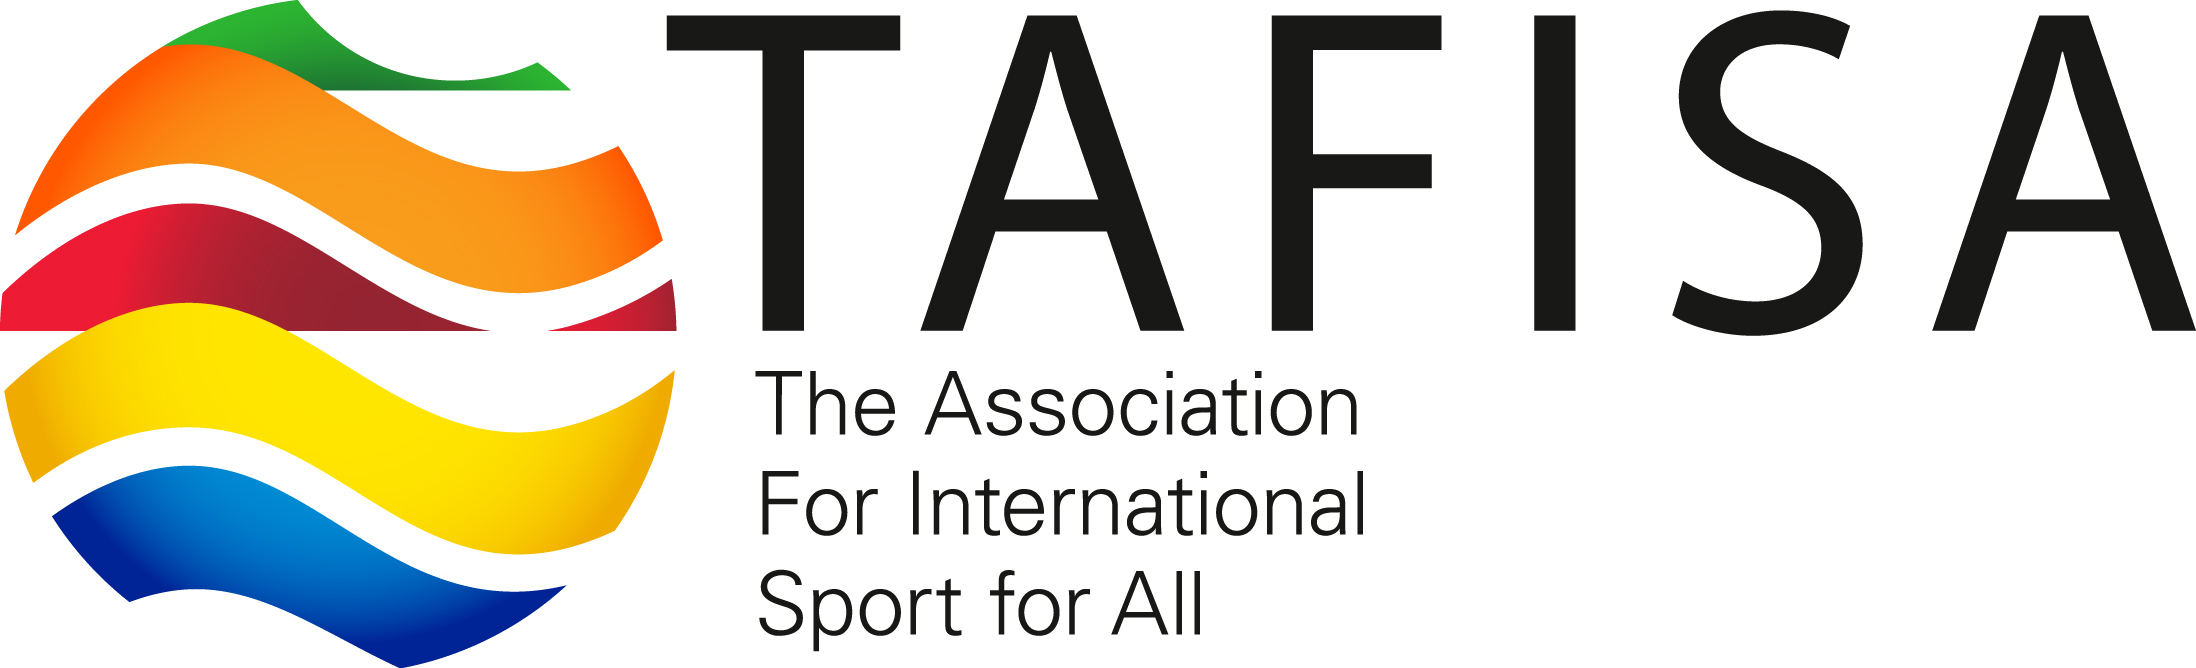 THE ASSOCIATION FOR INTERNATIONAL SPORT FOR ALL :